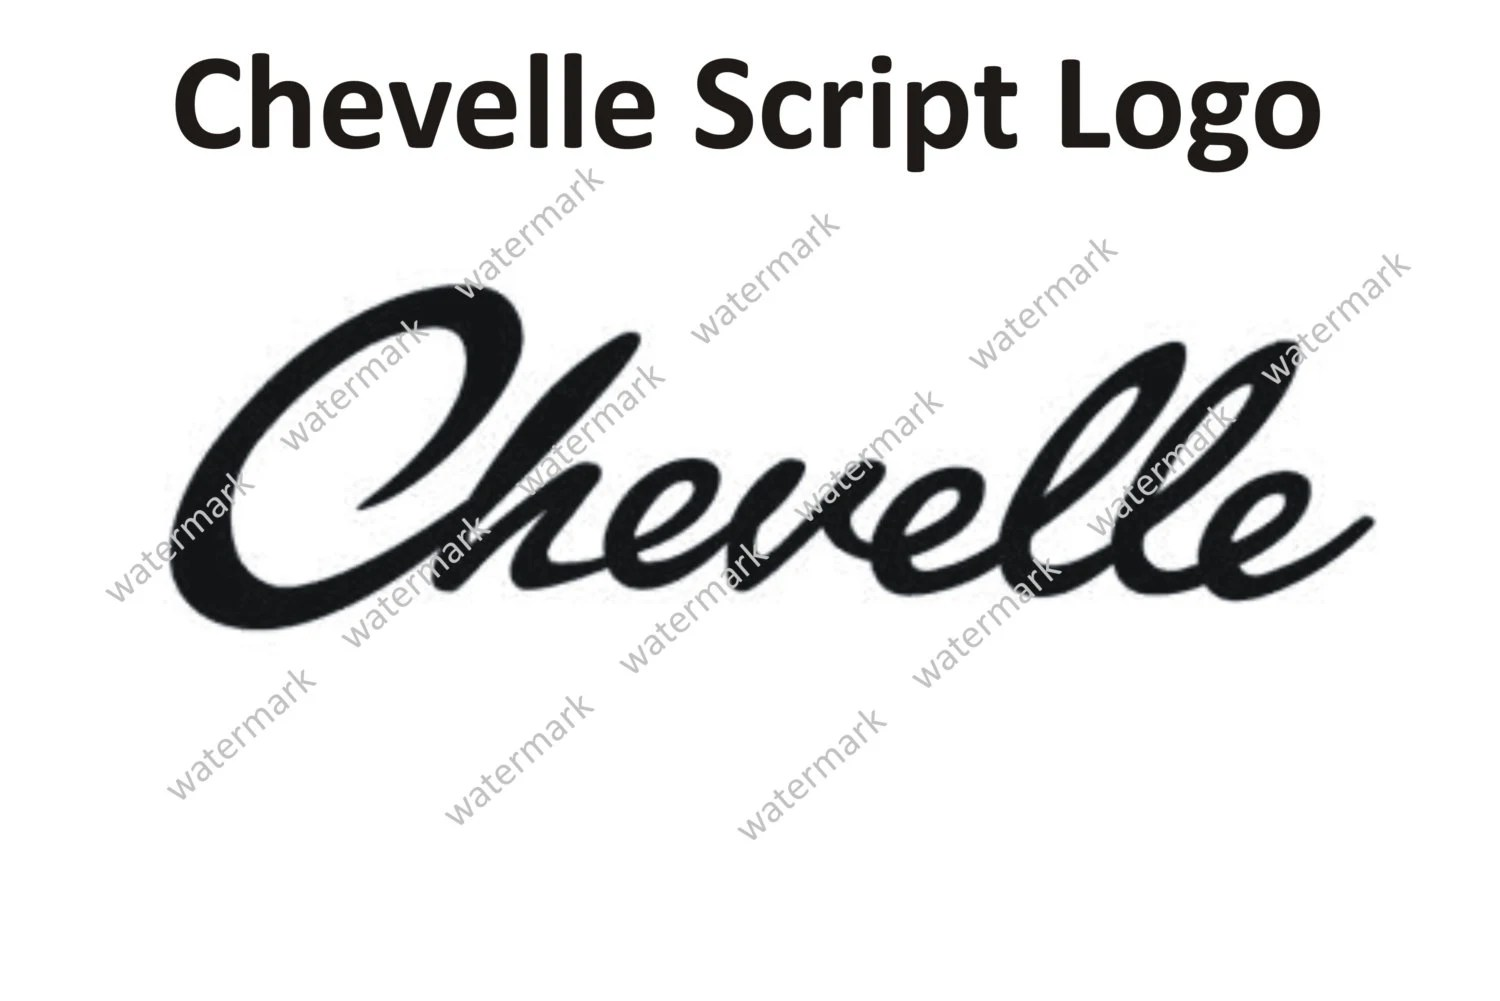 Chevrolet Chevy Chevelle Script Logo Decal Sticker By Robnmon